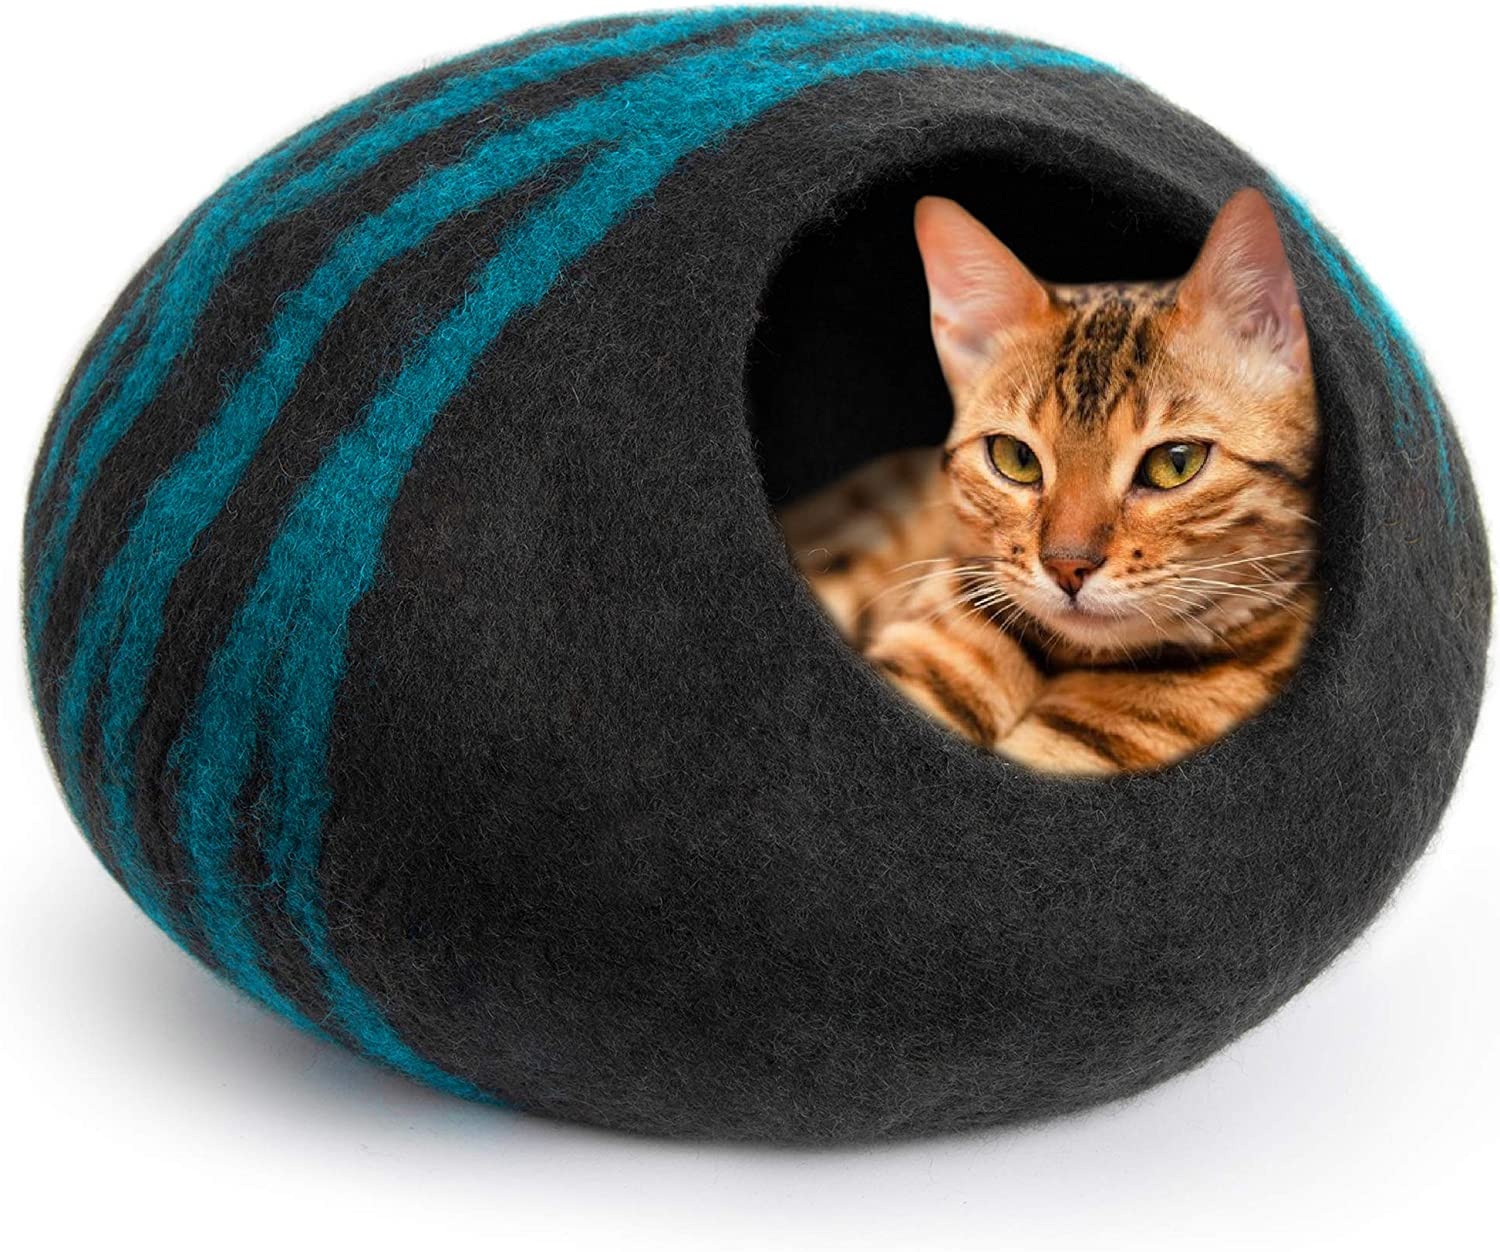 Wool Felt Whale  Design Cat Bed FREE SHIPPING Fair Trade Choose from three Amazing design Felt Cat Cave 100/% Wool and Handmade